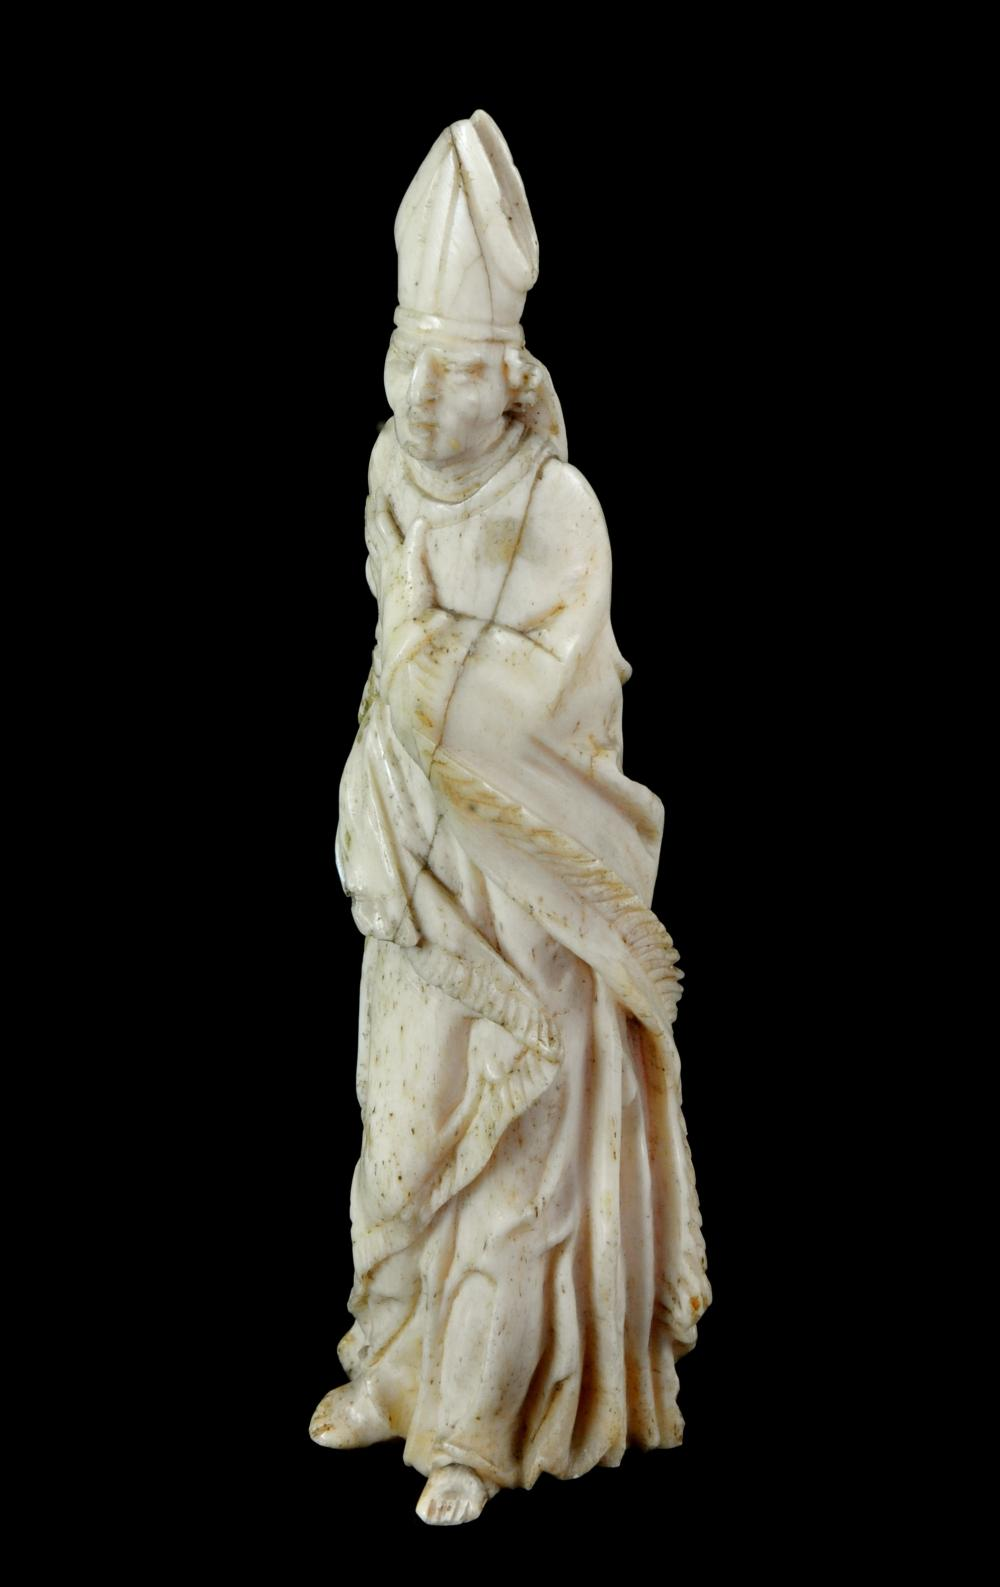 Carved Bone Or Ivory Figure Of A Bishop Possibly French 16